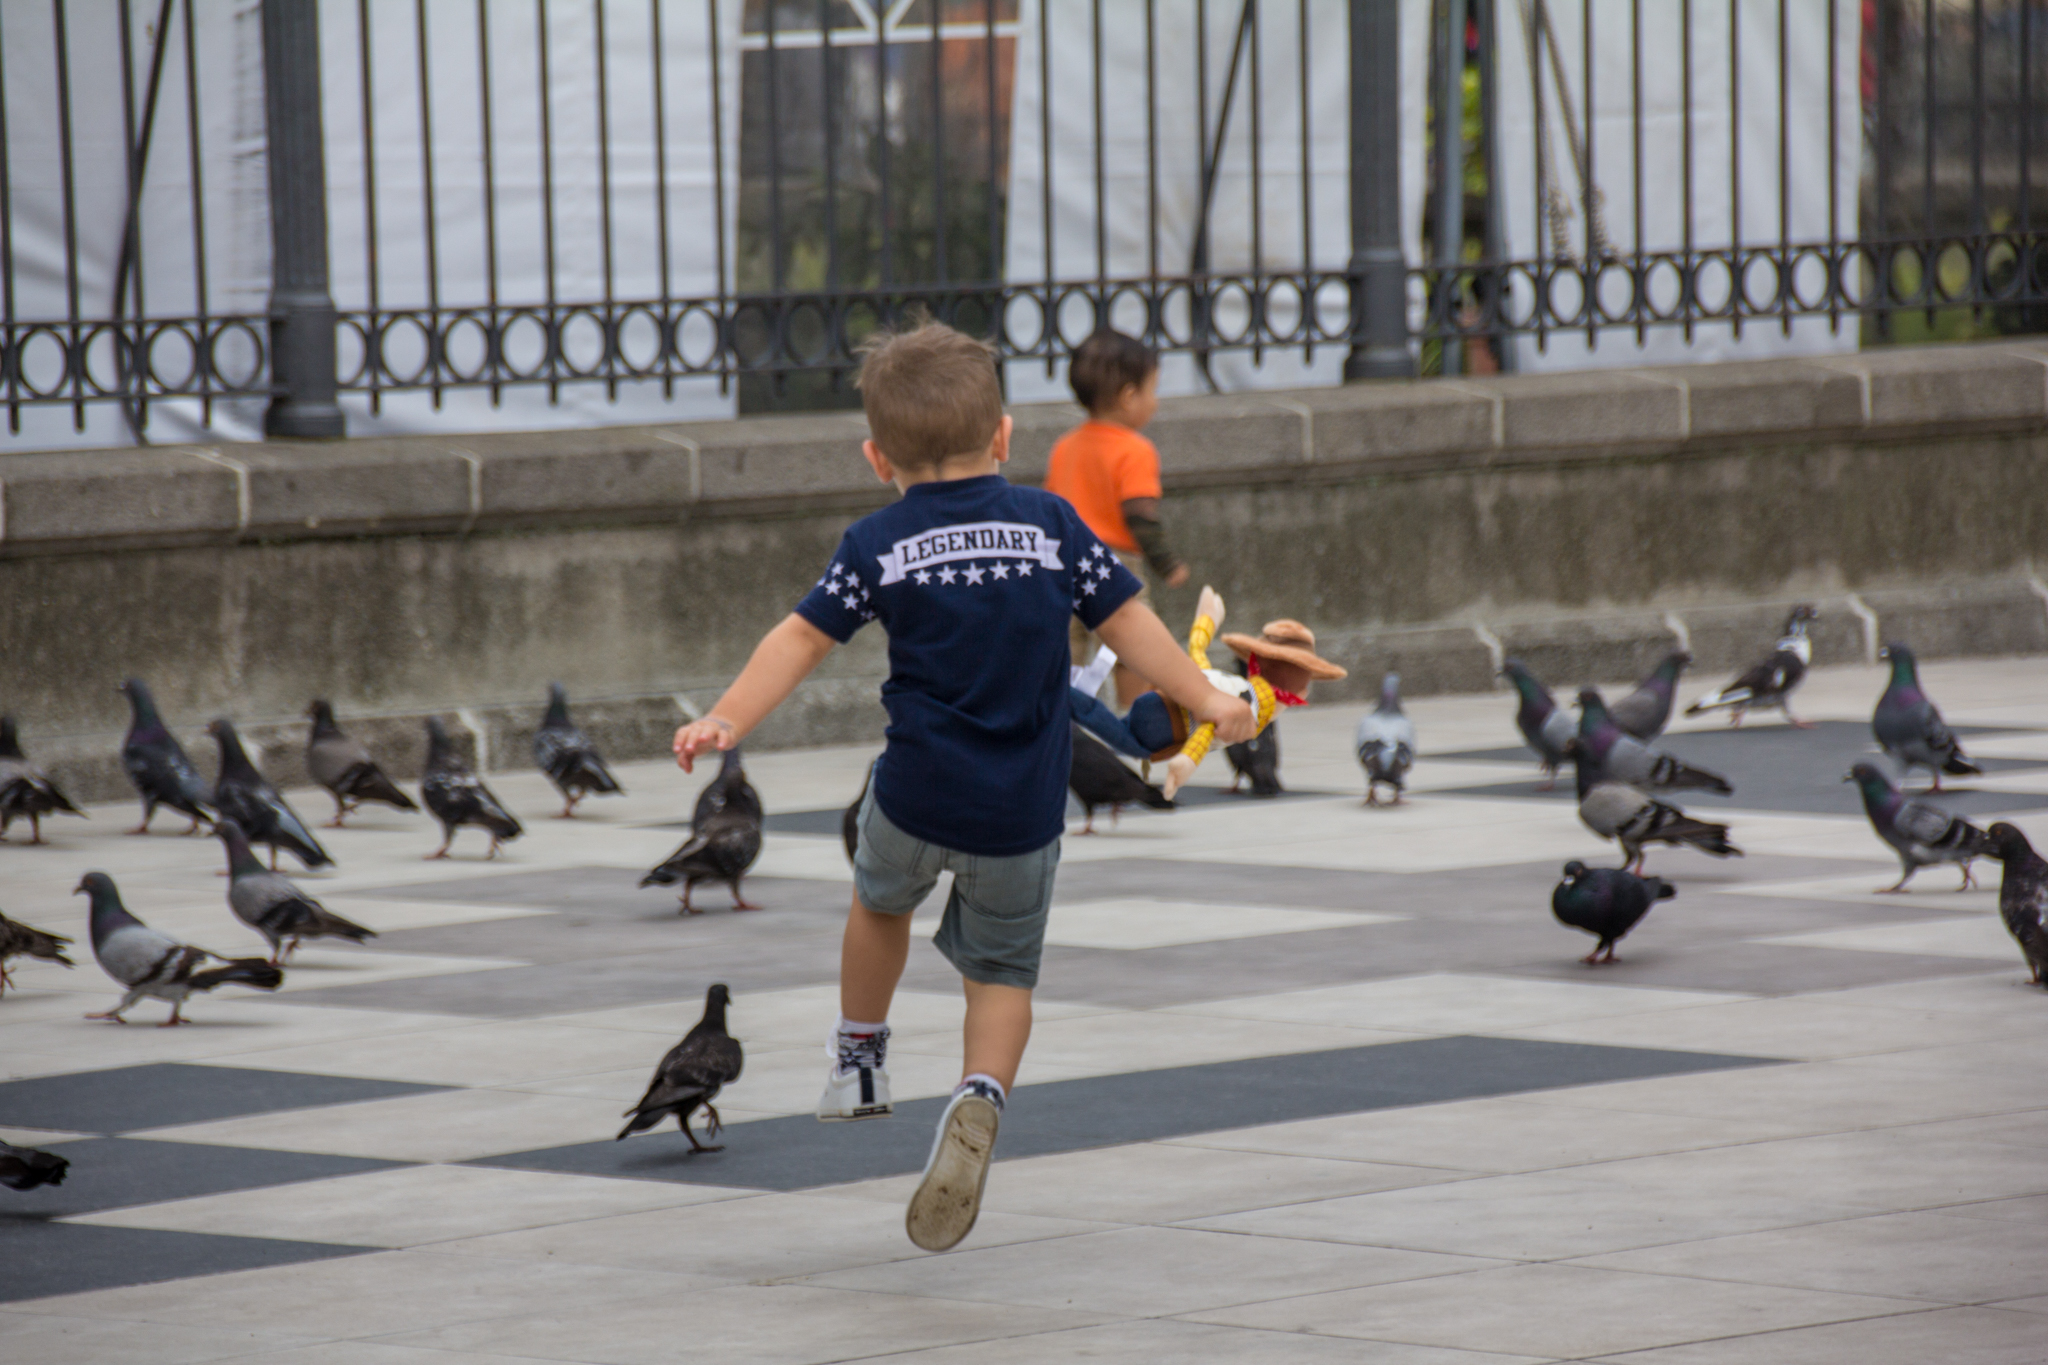 And, if all else fails, there is always a plethora of kids chasing pigeons in the main squares.